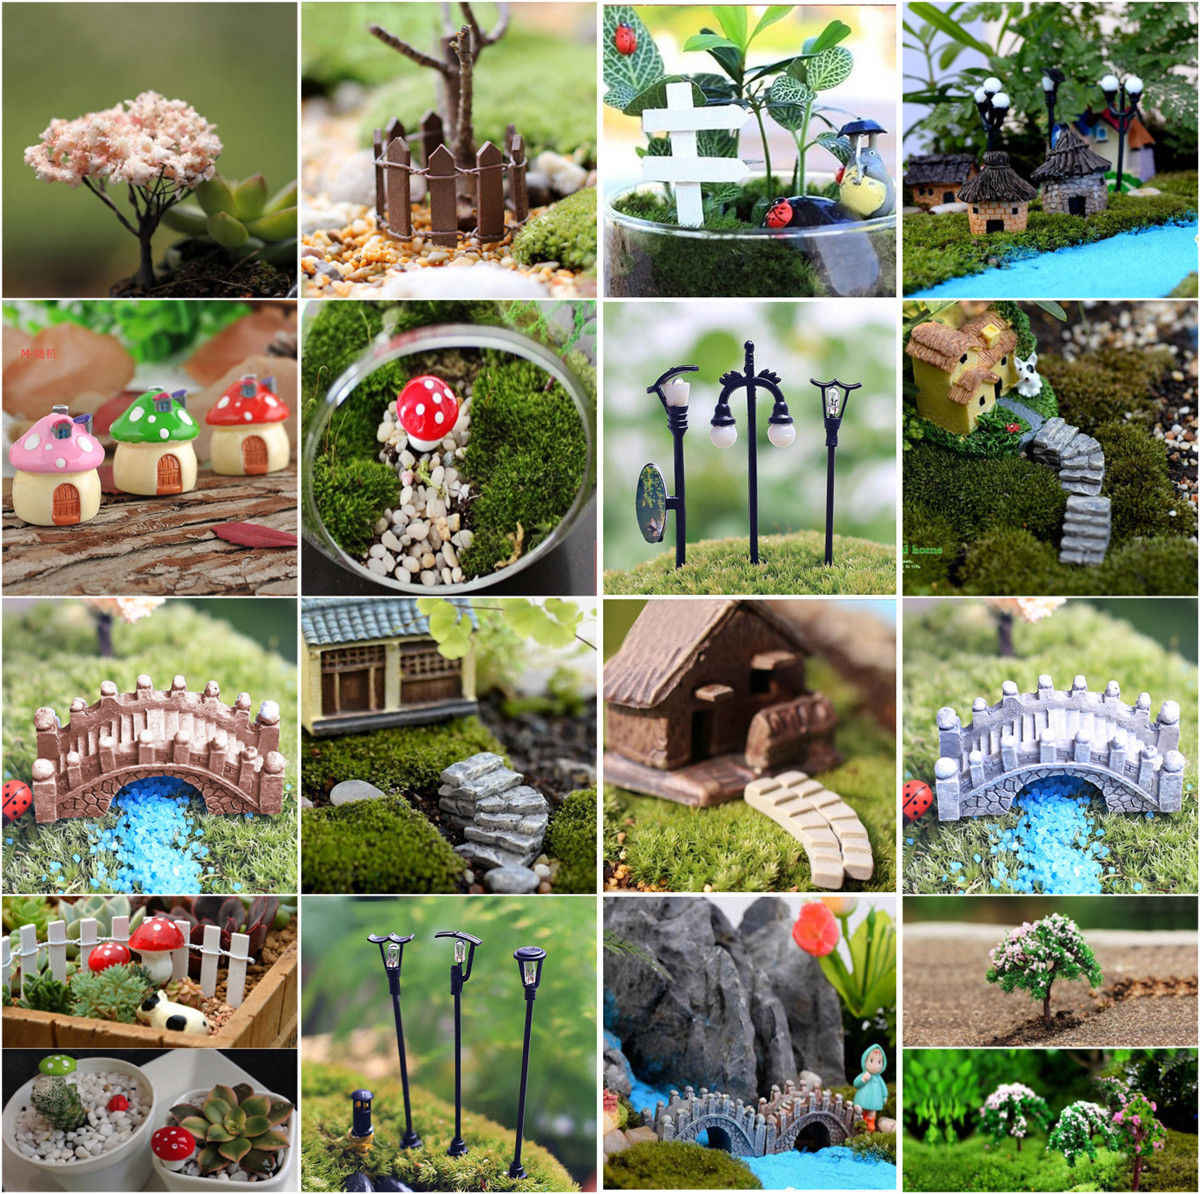 Mini Craft Figurine Pianta Vaso Da Giardino Ornamento In Miniatura Fairy Garden Decor FAI DA TE